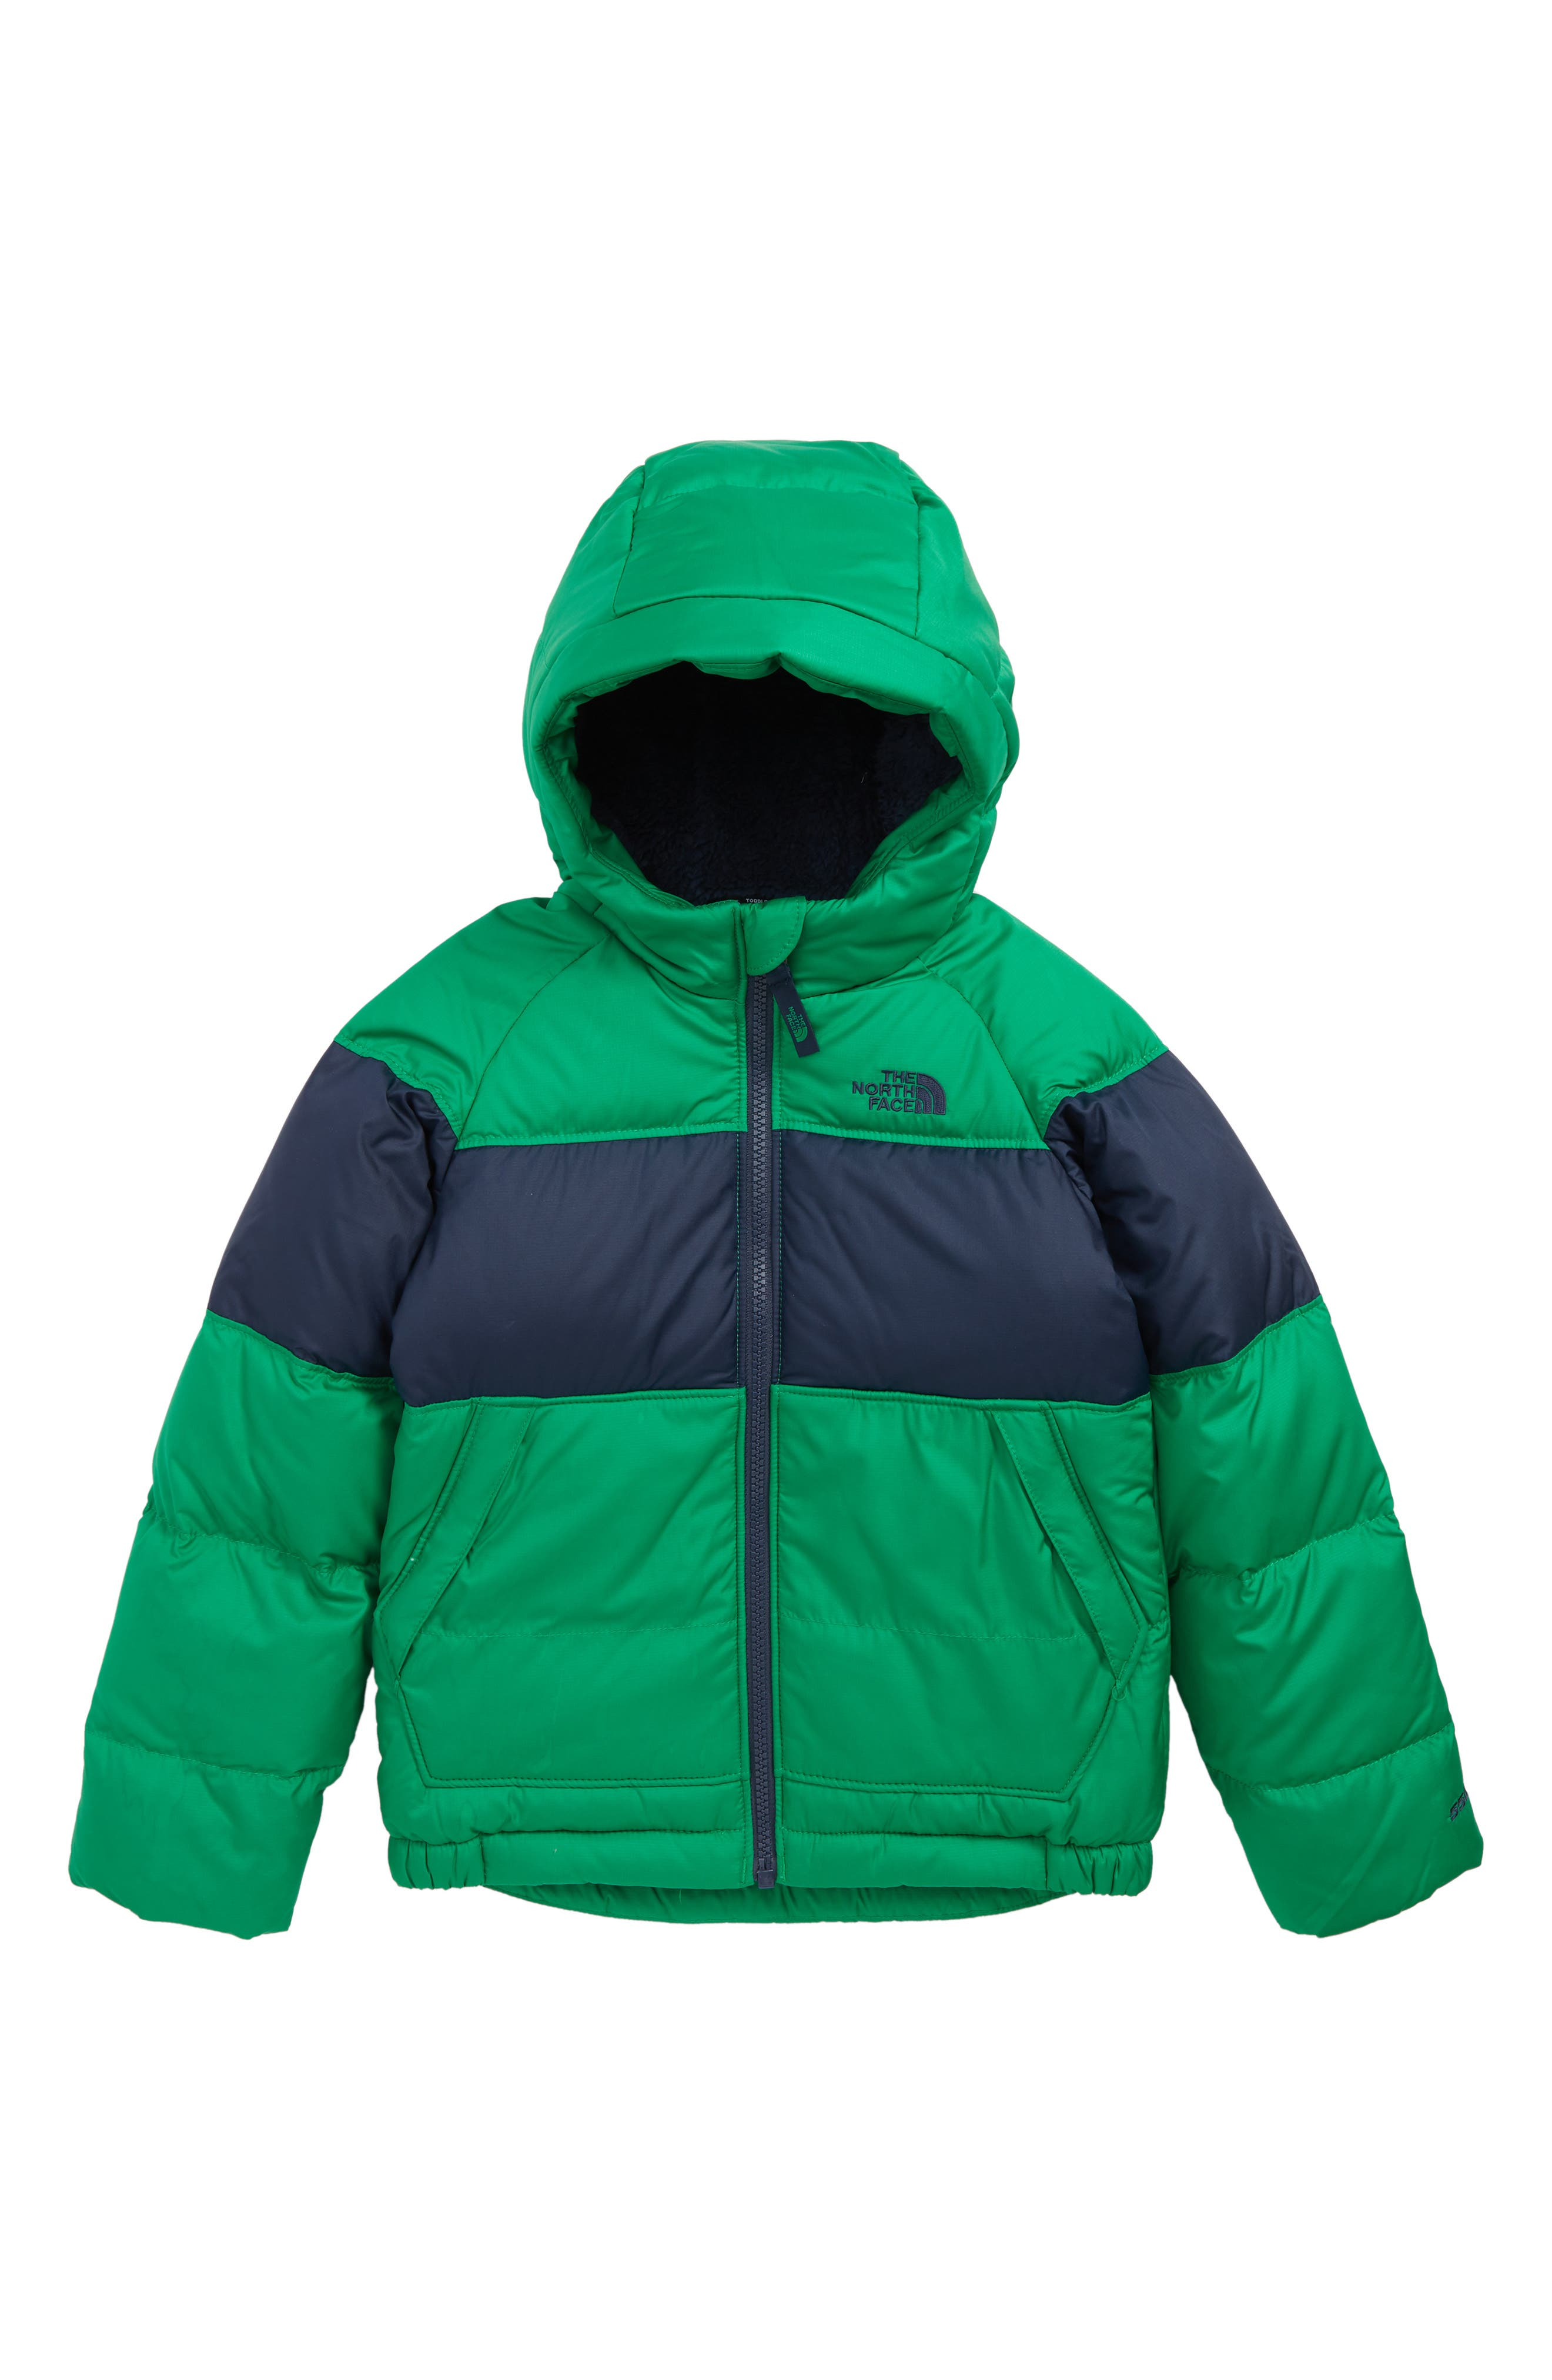 Moondoggy 2.0 Water Repellent Down Jacket,                         Main,                         color, PRIMARY GREEN